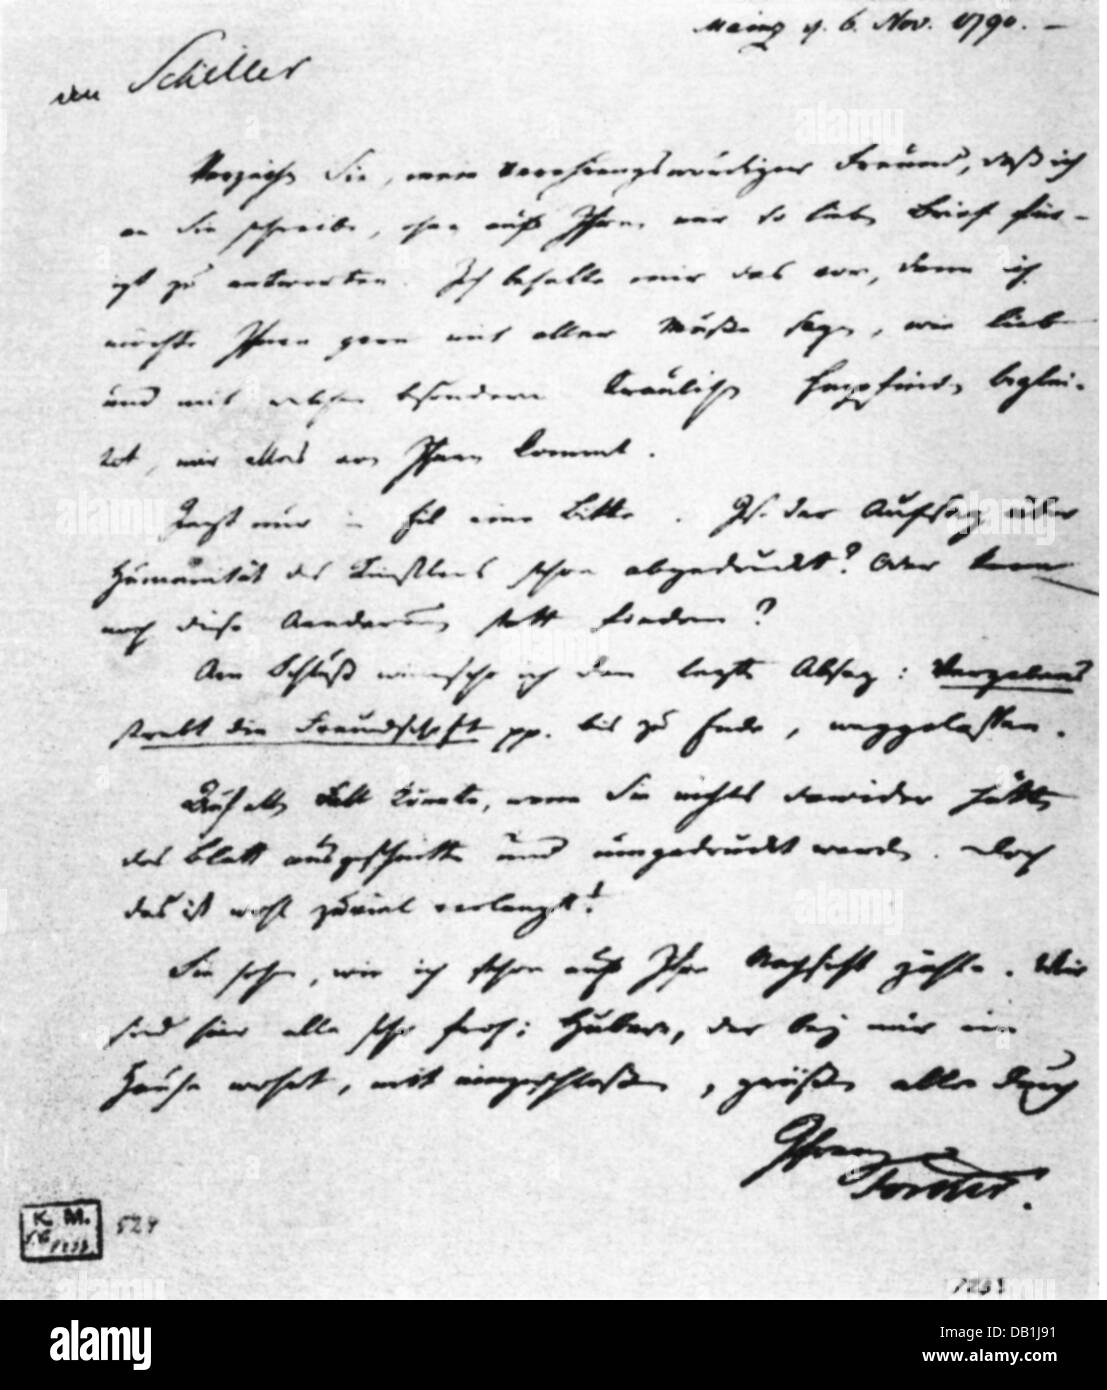 Forster, Johann Georg, 27.11.1754 - 10.1.1794, German natural scientist, letter to Friedrich Schiller about the - Stock Image